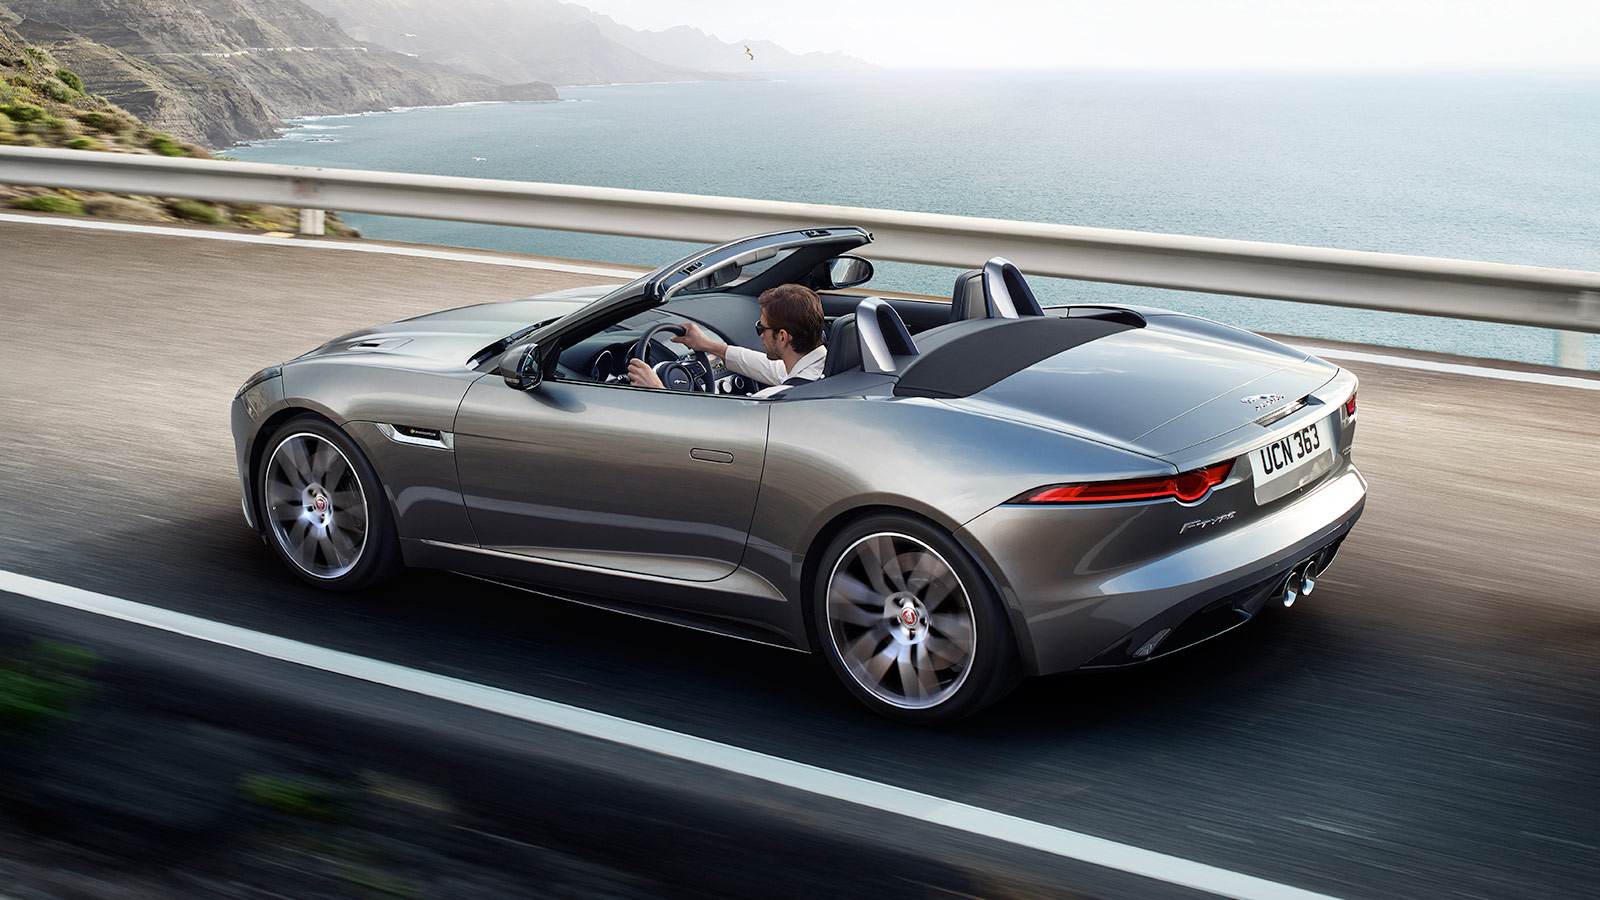 F-TYPE R-Dynamic in Silicon Silver In-Motion by the Ocean